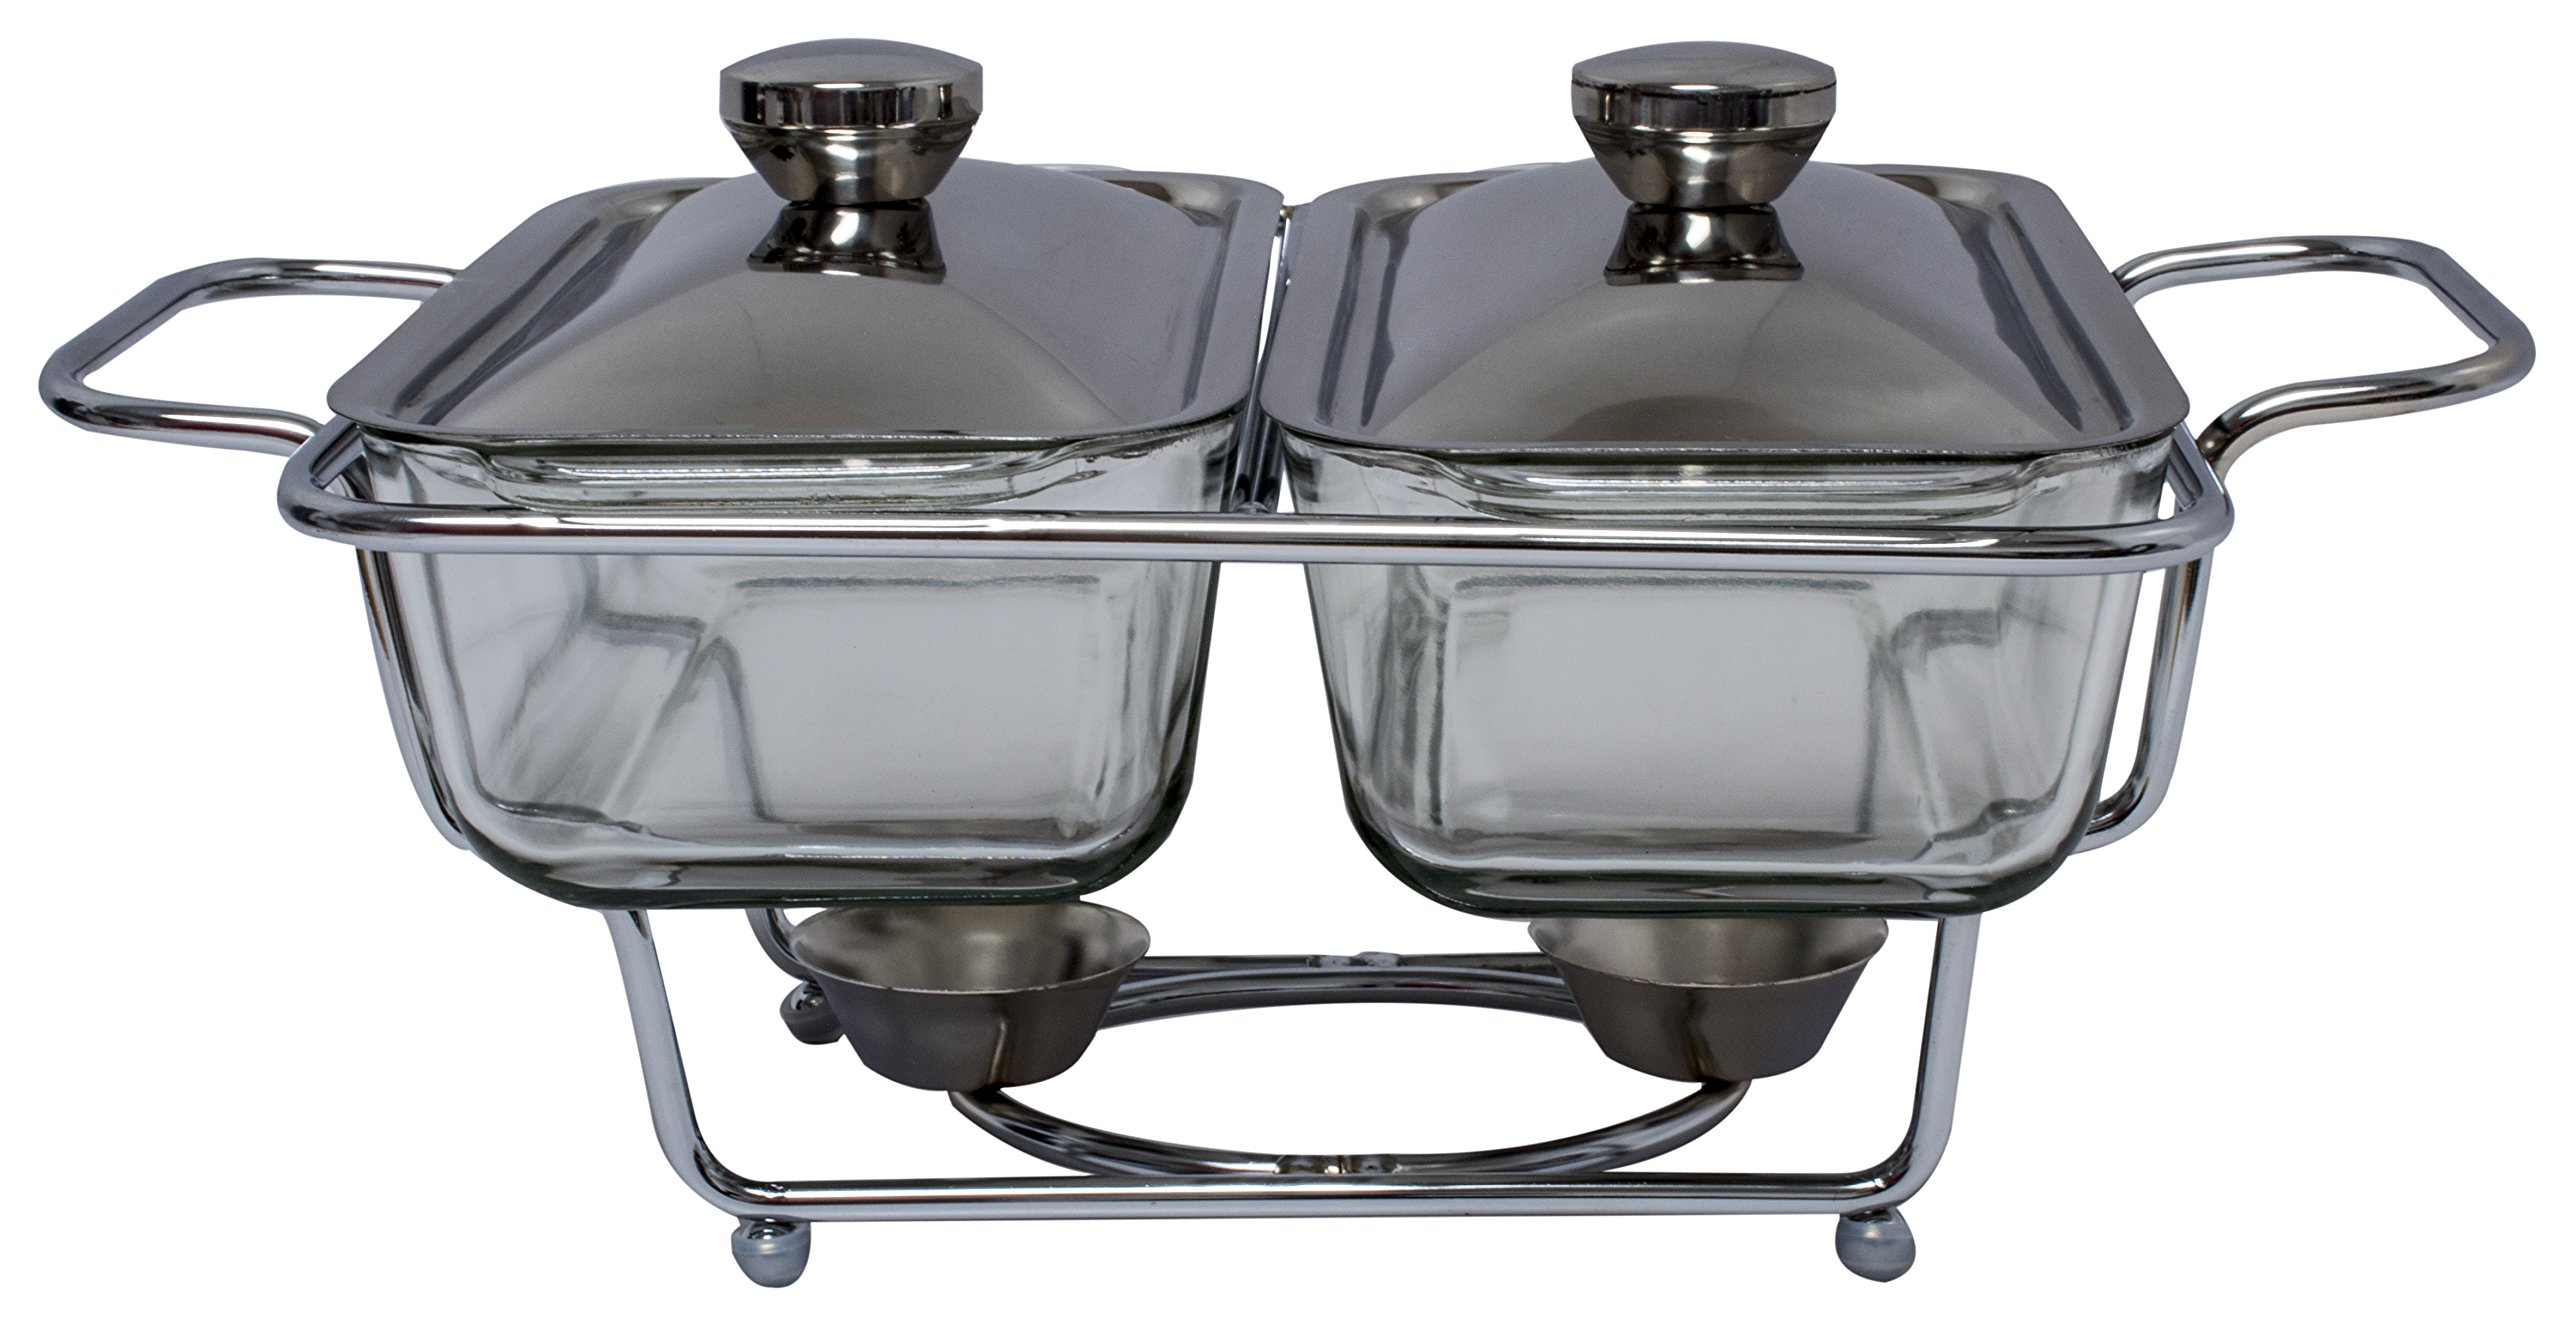 Royal Brands Stainless Double Glass Chafing Dish 1.3 Liter Buffet Serving Chafer Food Pan